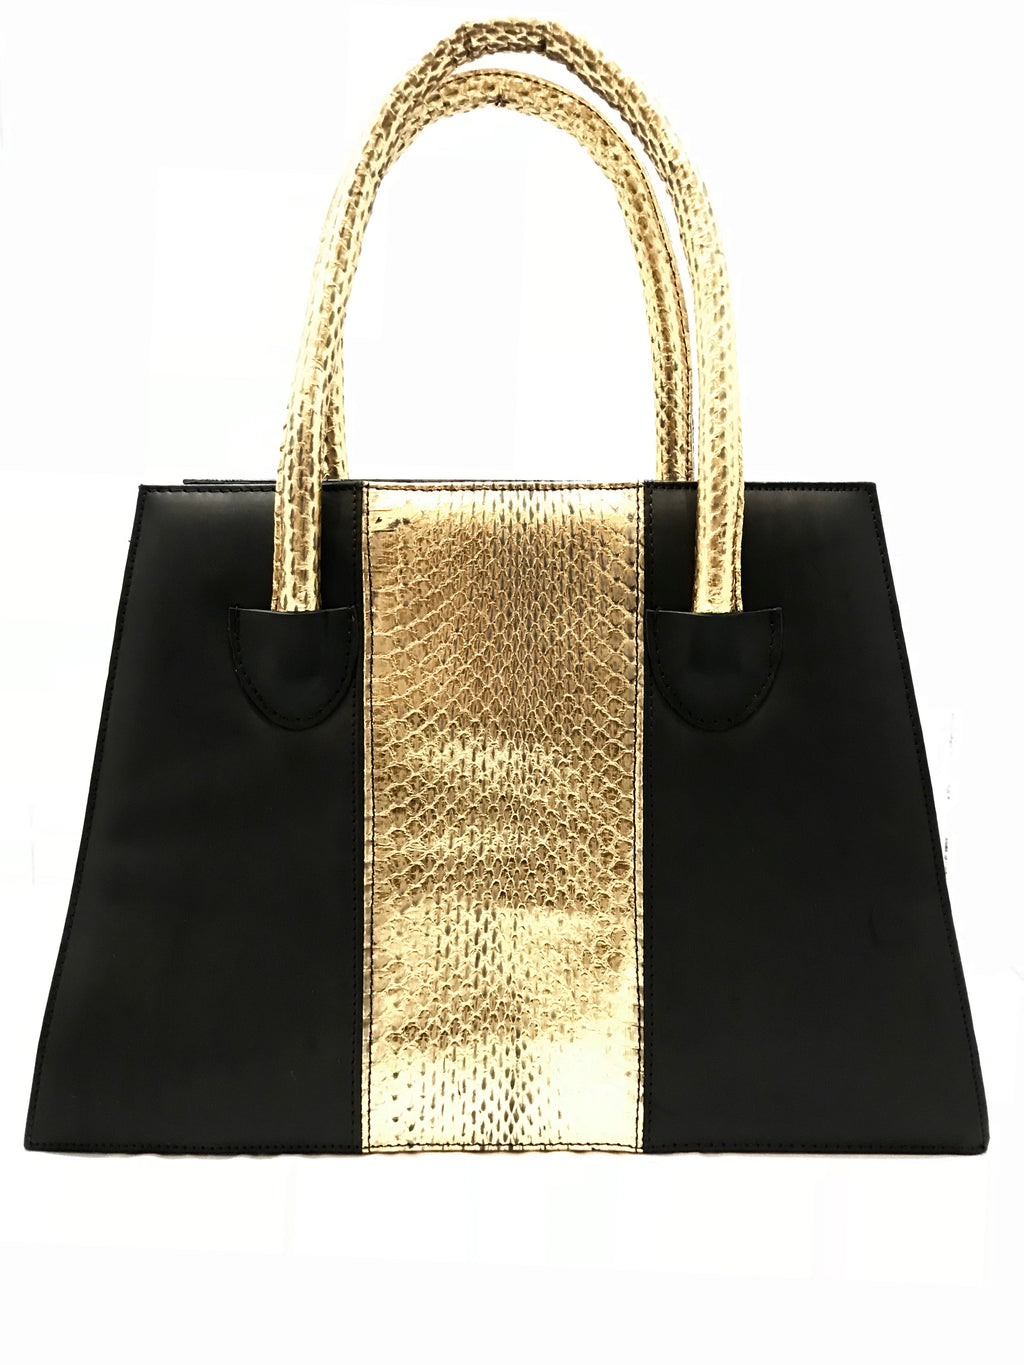 Black and Gold Wonder Bag with Gold Snake Skin Belt